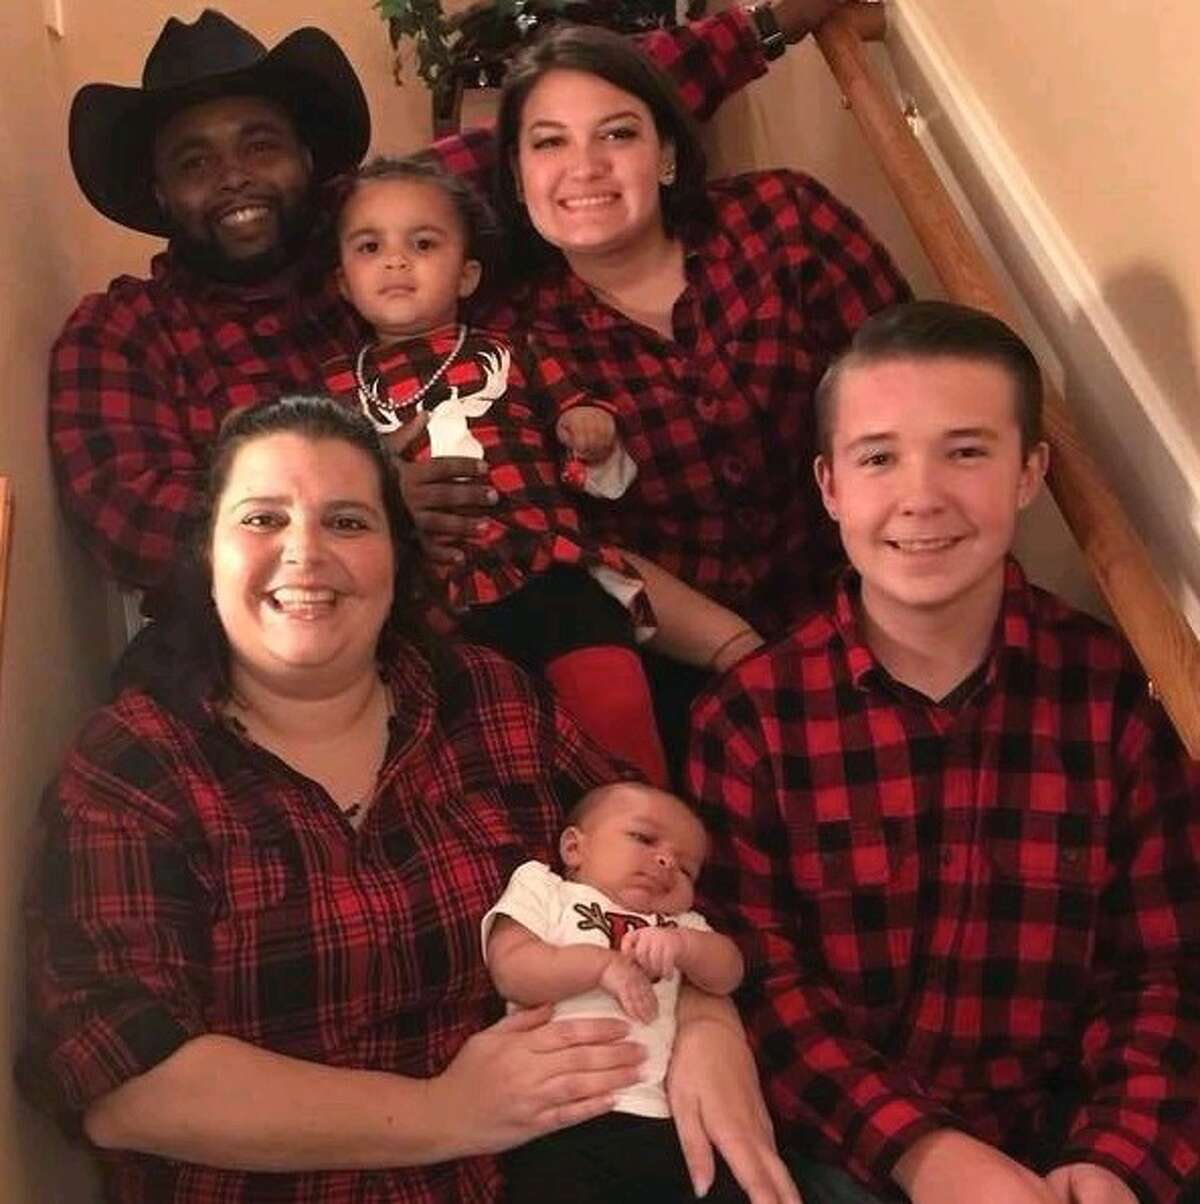 Derrick and Talicia Johnson are pictured with their children and nephew at Christmas. Less than a month later, their home was destroyed by fire.